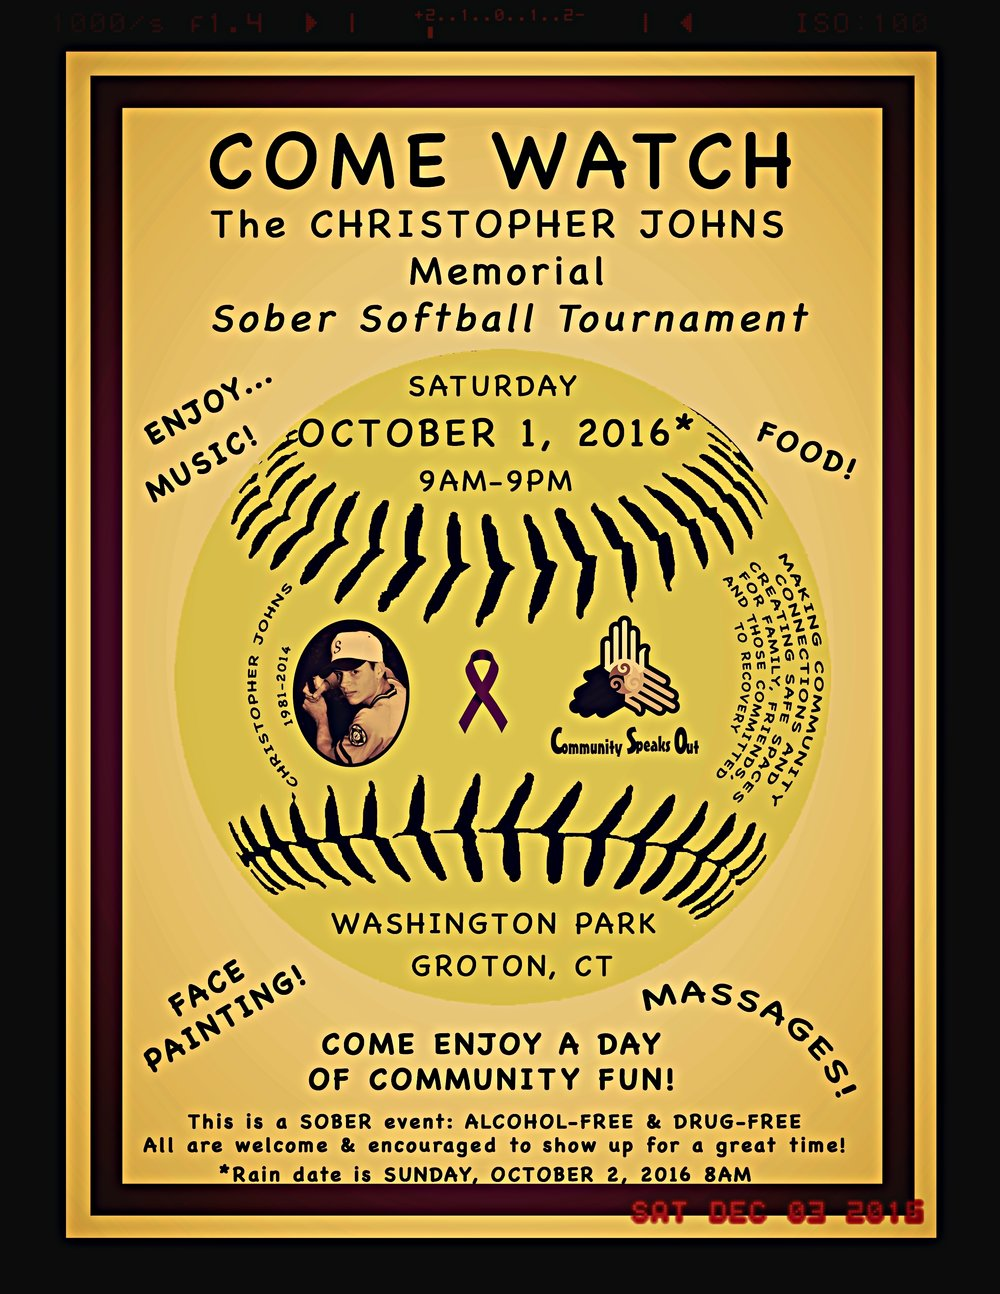 THE CHRISTOPHER JOHNS SOBER SOFTBALL TOURNMENT